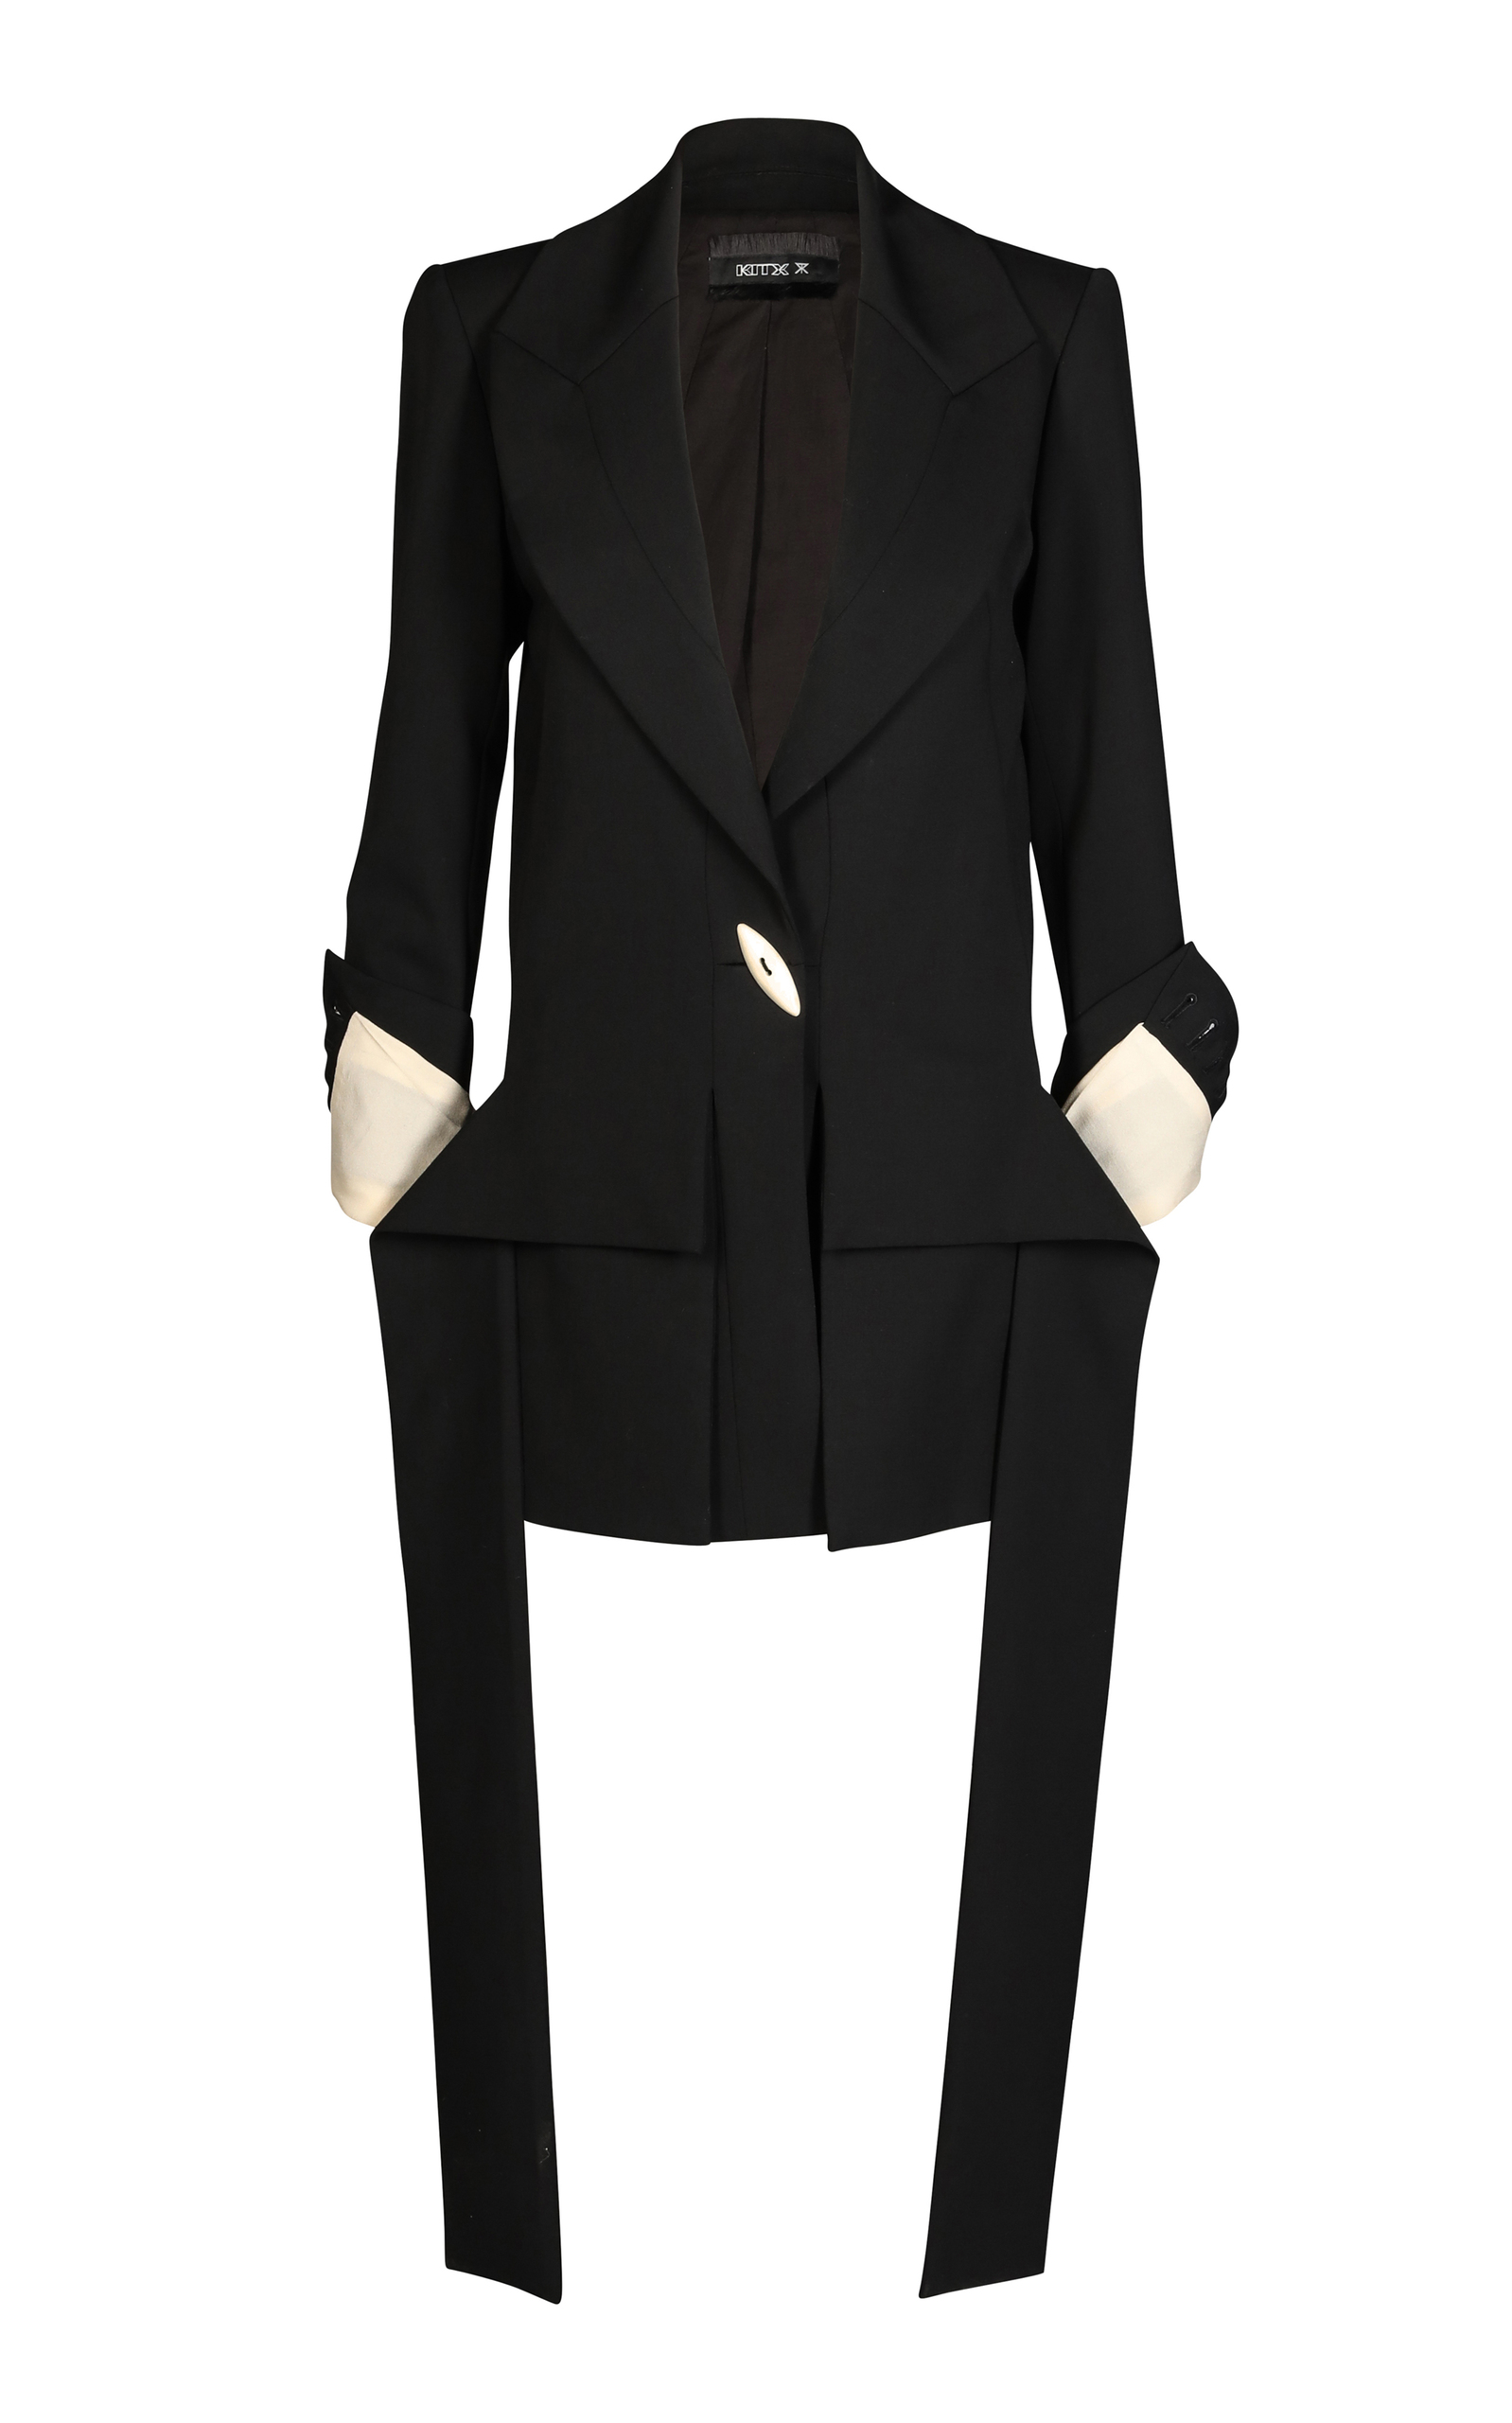 KITX Timeless Tails Jacket in Black